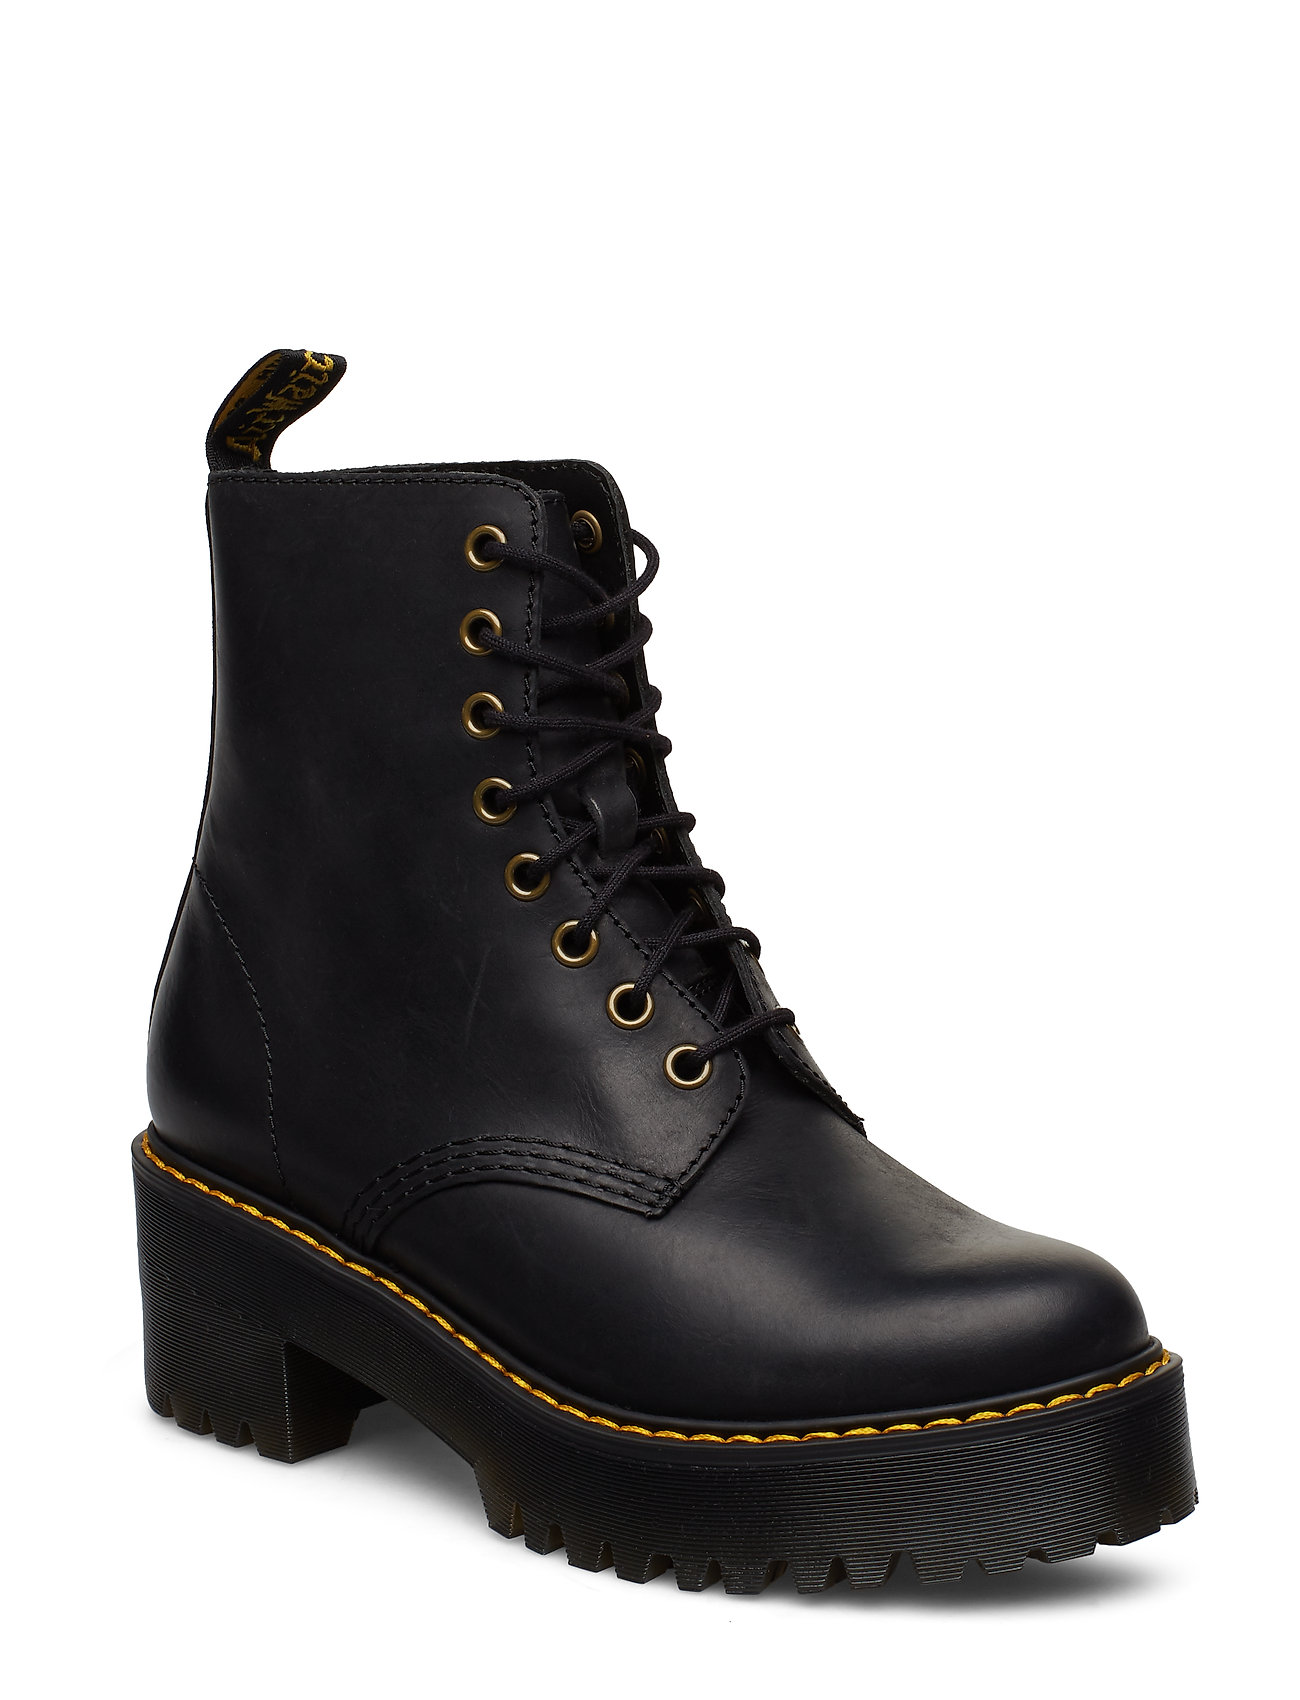 1460 Finda Shoes Boots Ankle Boots Ankle Boots With Heel Musta Dr. Martens